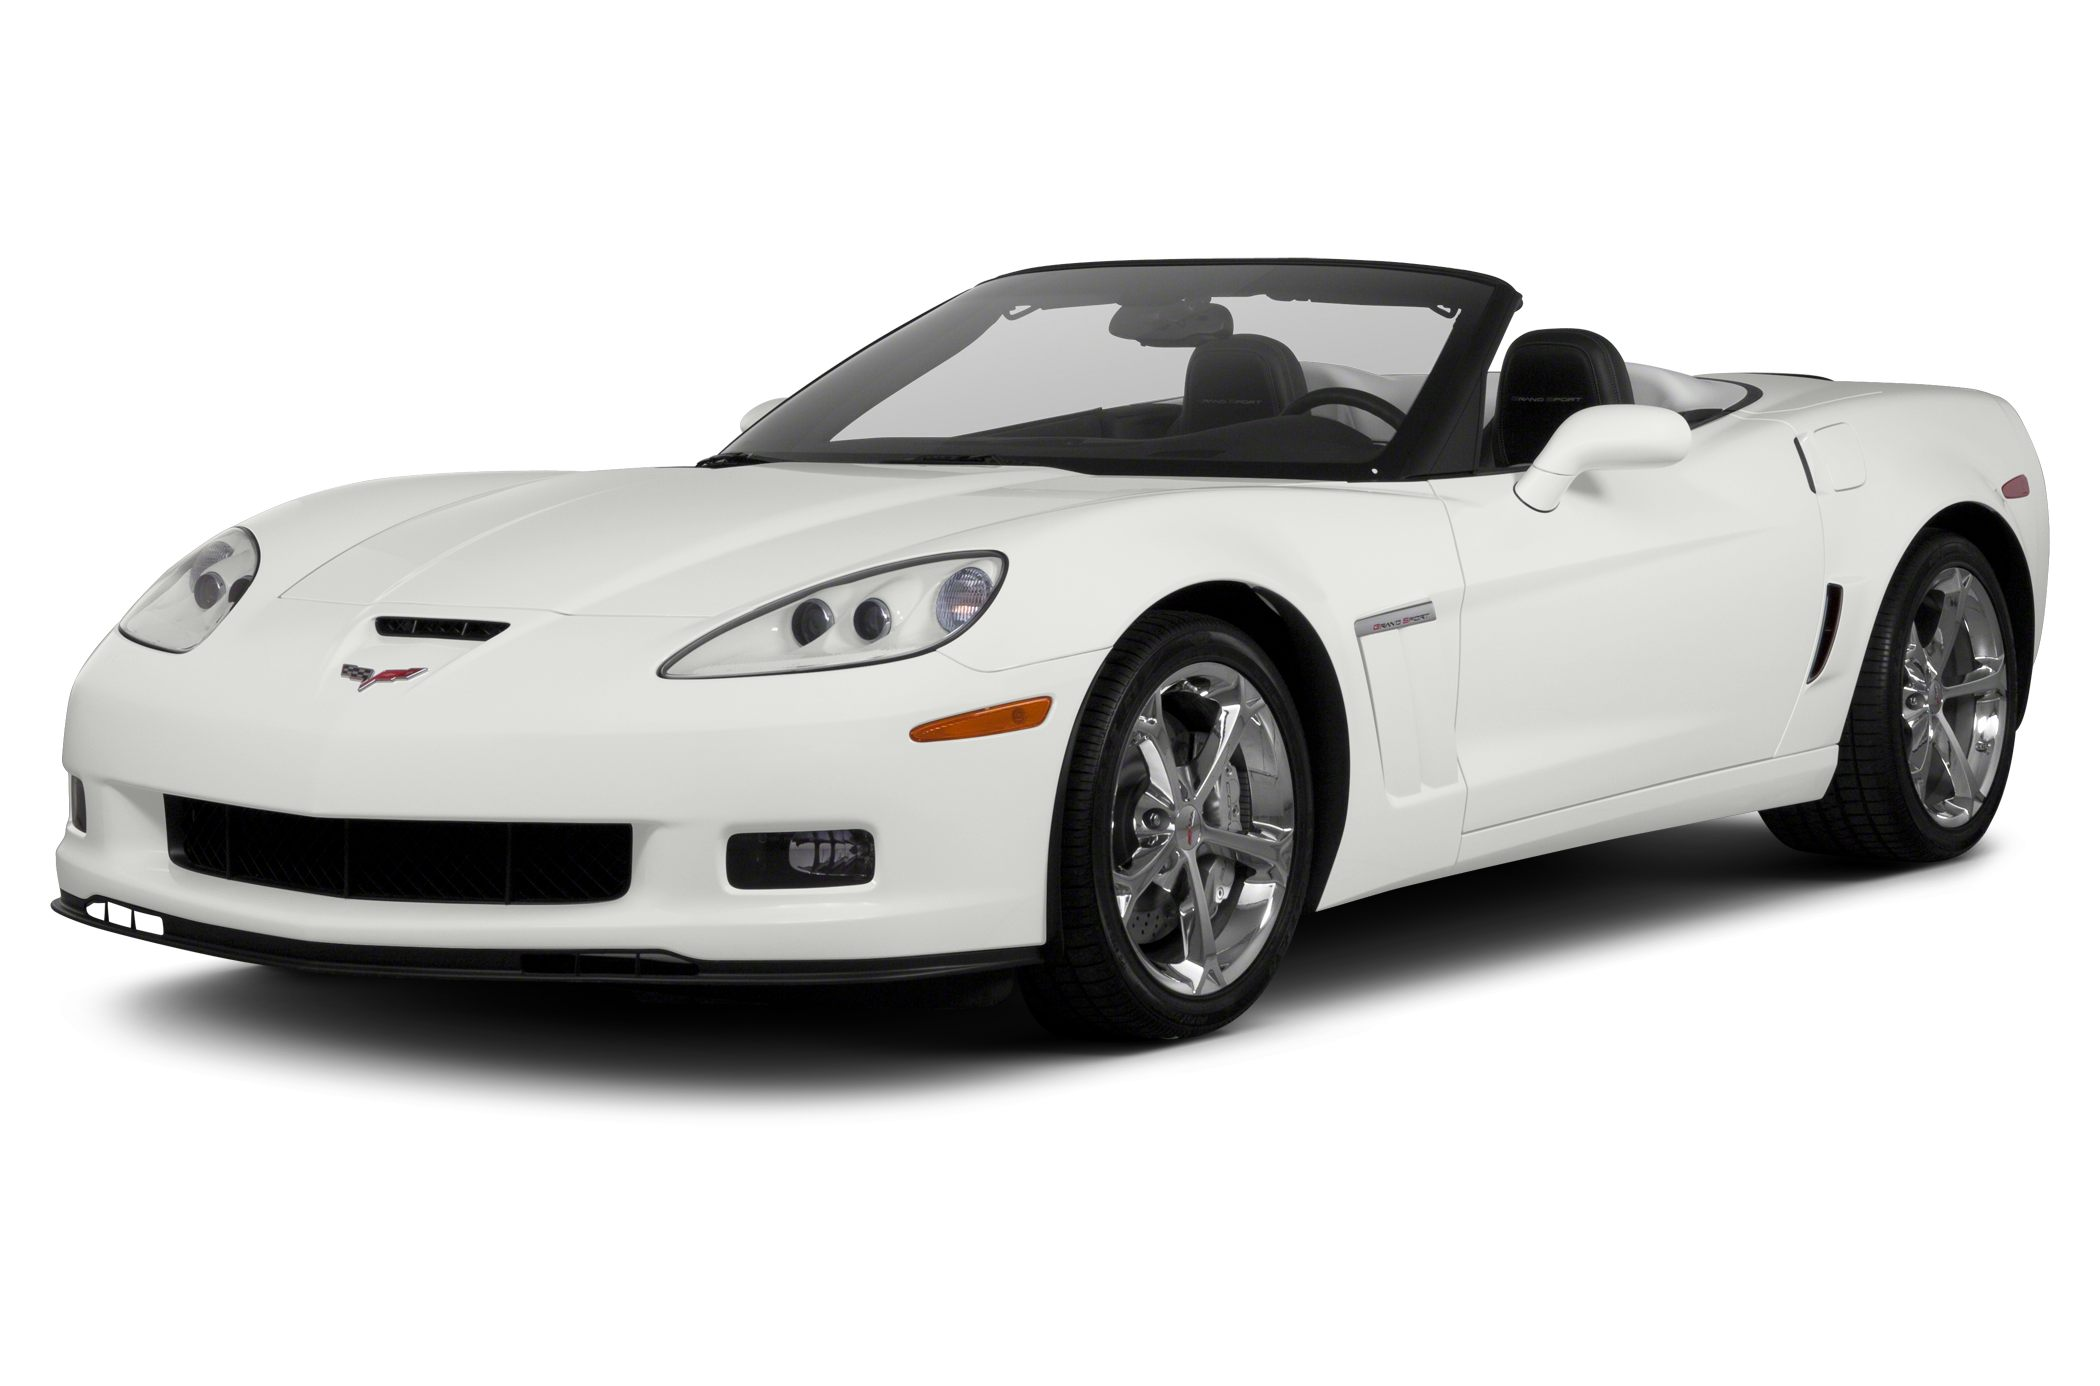 2013 Chevrolet Corvette Grand Sport Coupe for sale in Jackson for $46,911 with 16,007 miles